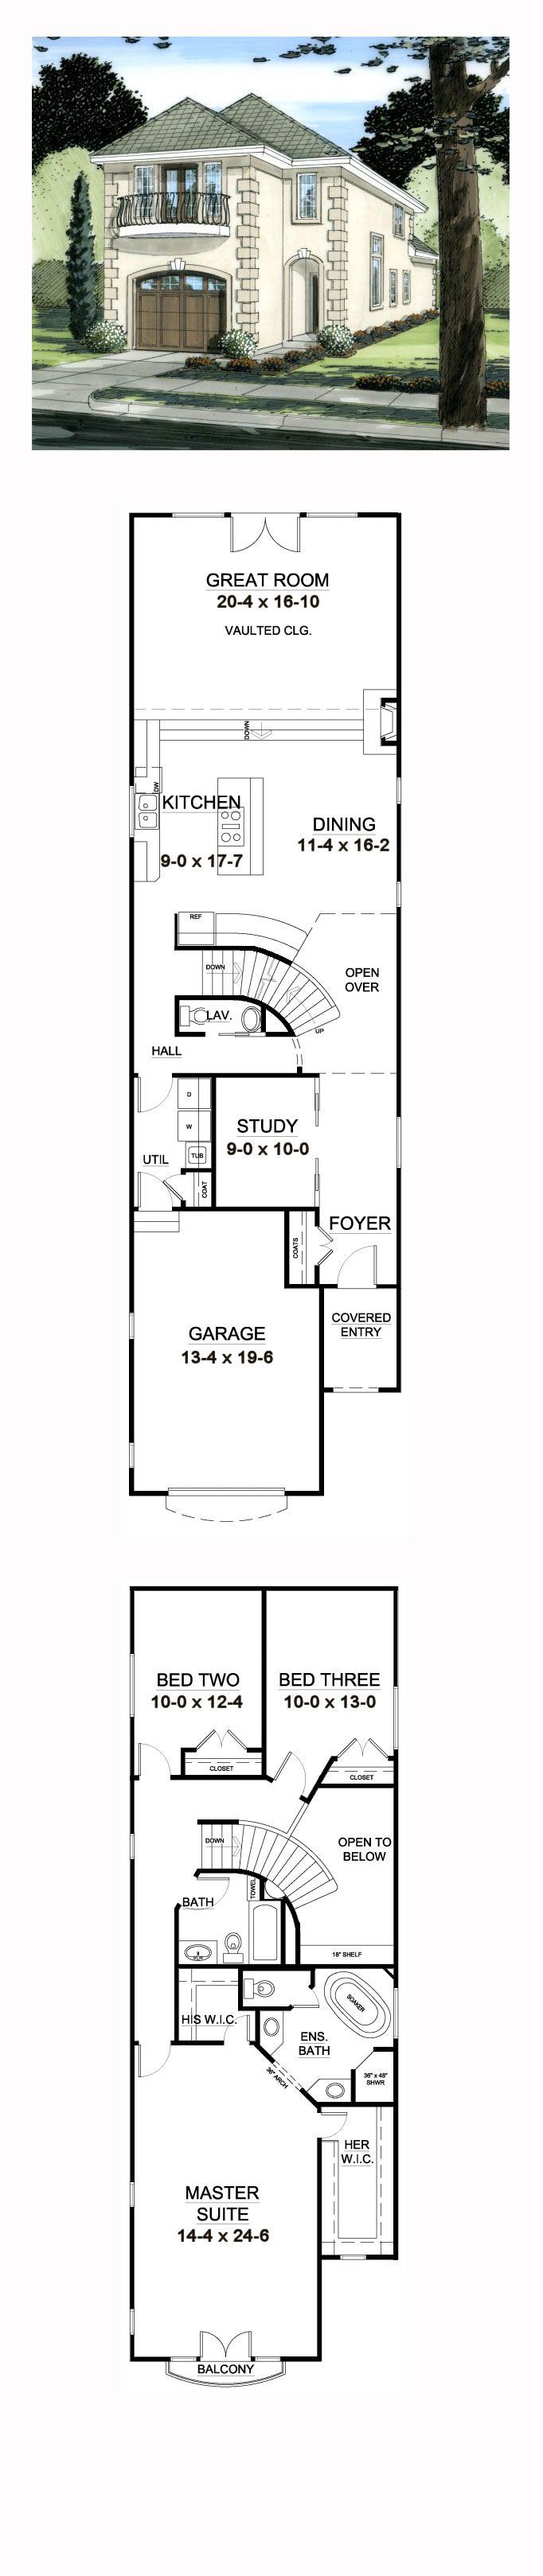 Florida House Plan 99997 Narrow Lot House Plans And Bedrooms